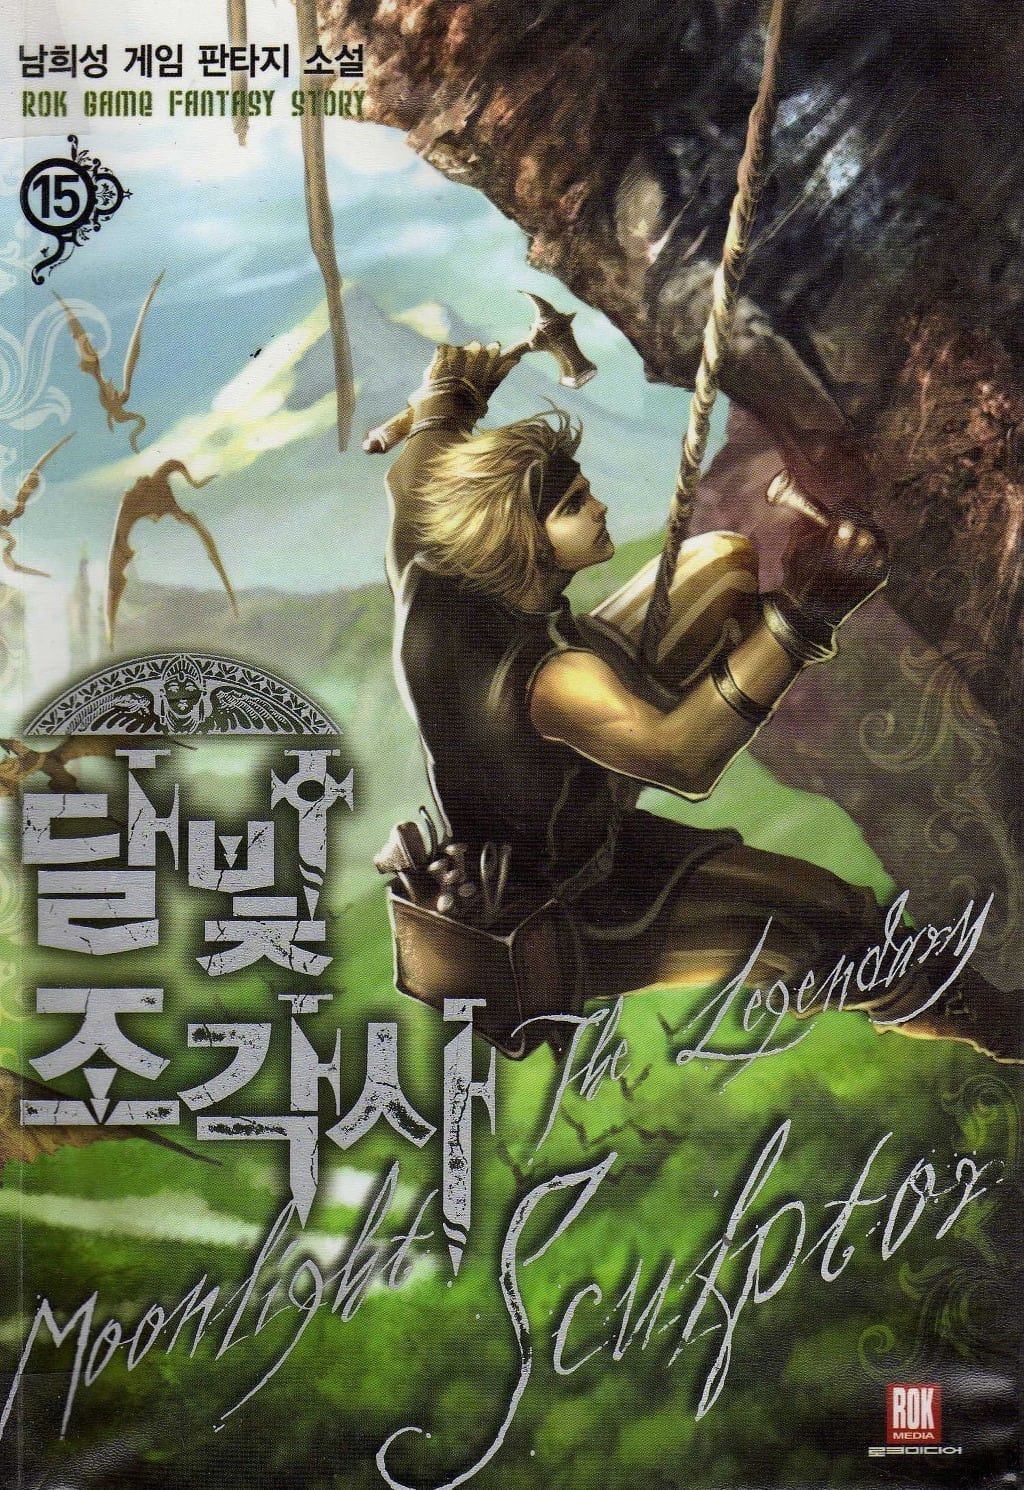 The Legendary Moonlight Sculptor novel cover